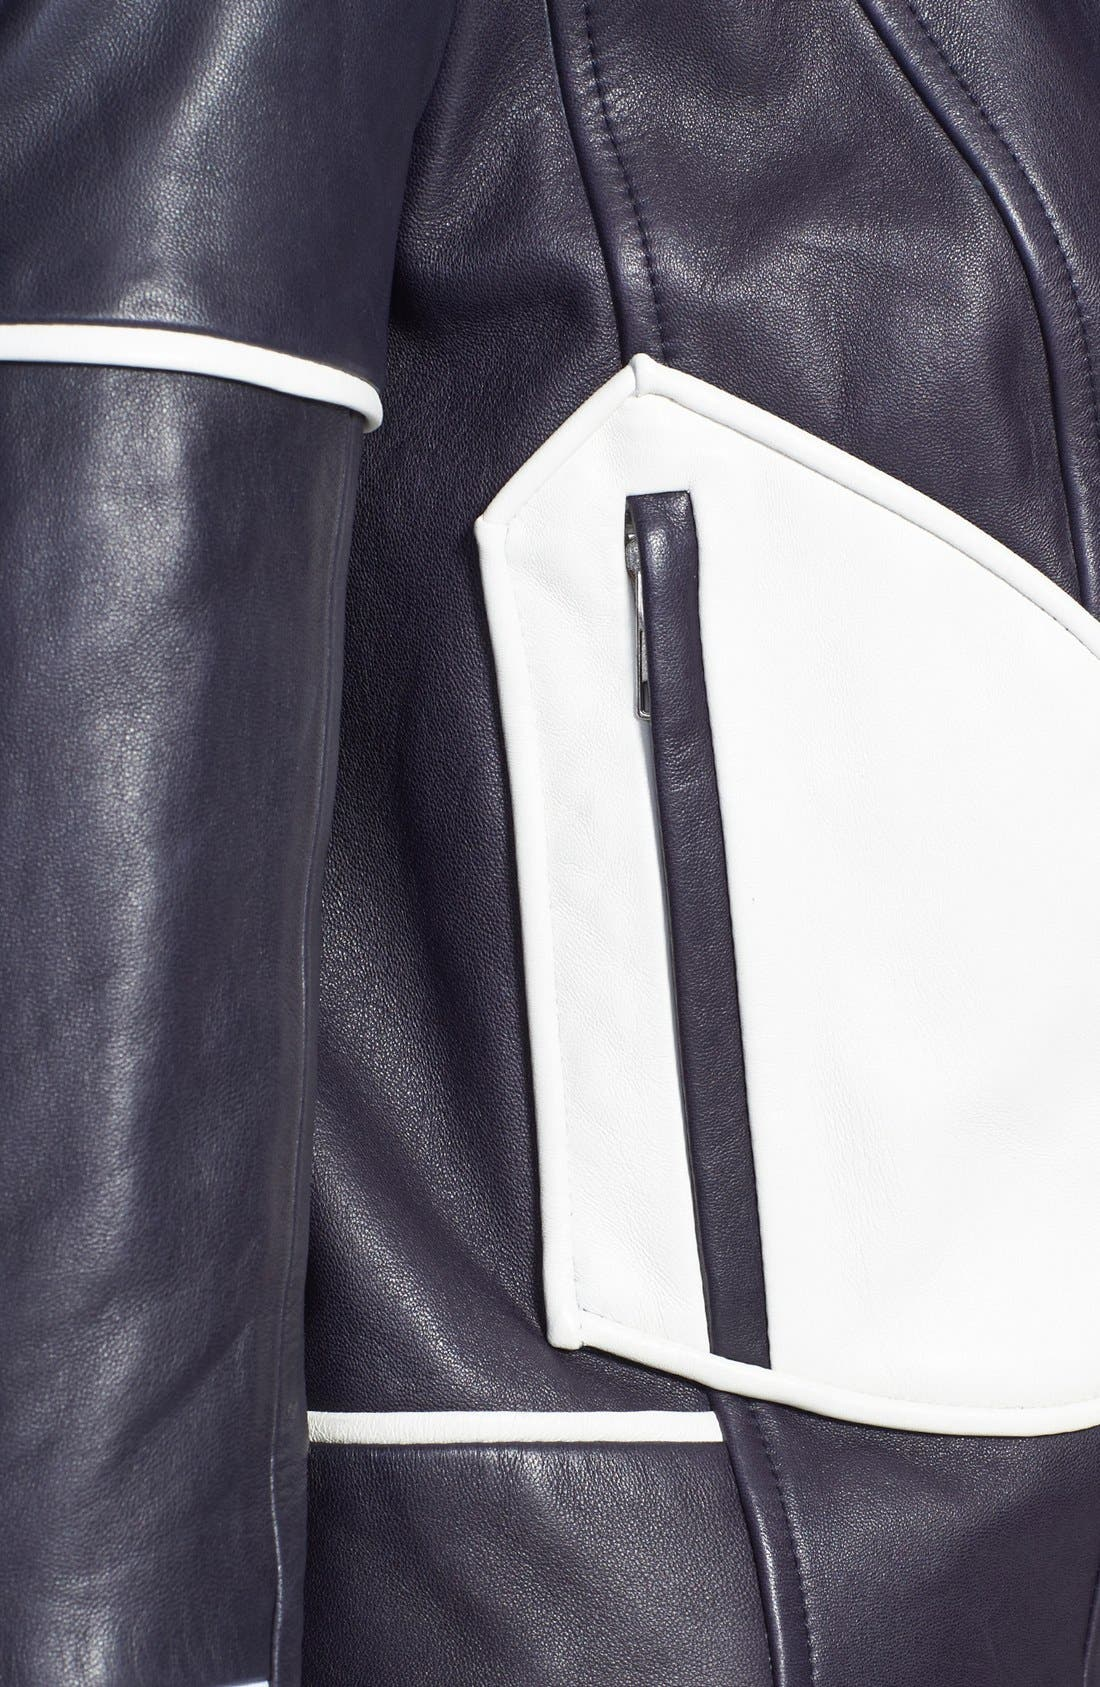 Alternate Image 3  - Diane von Furstenberg 'Kenzie' Leather Moto Jacket